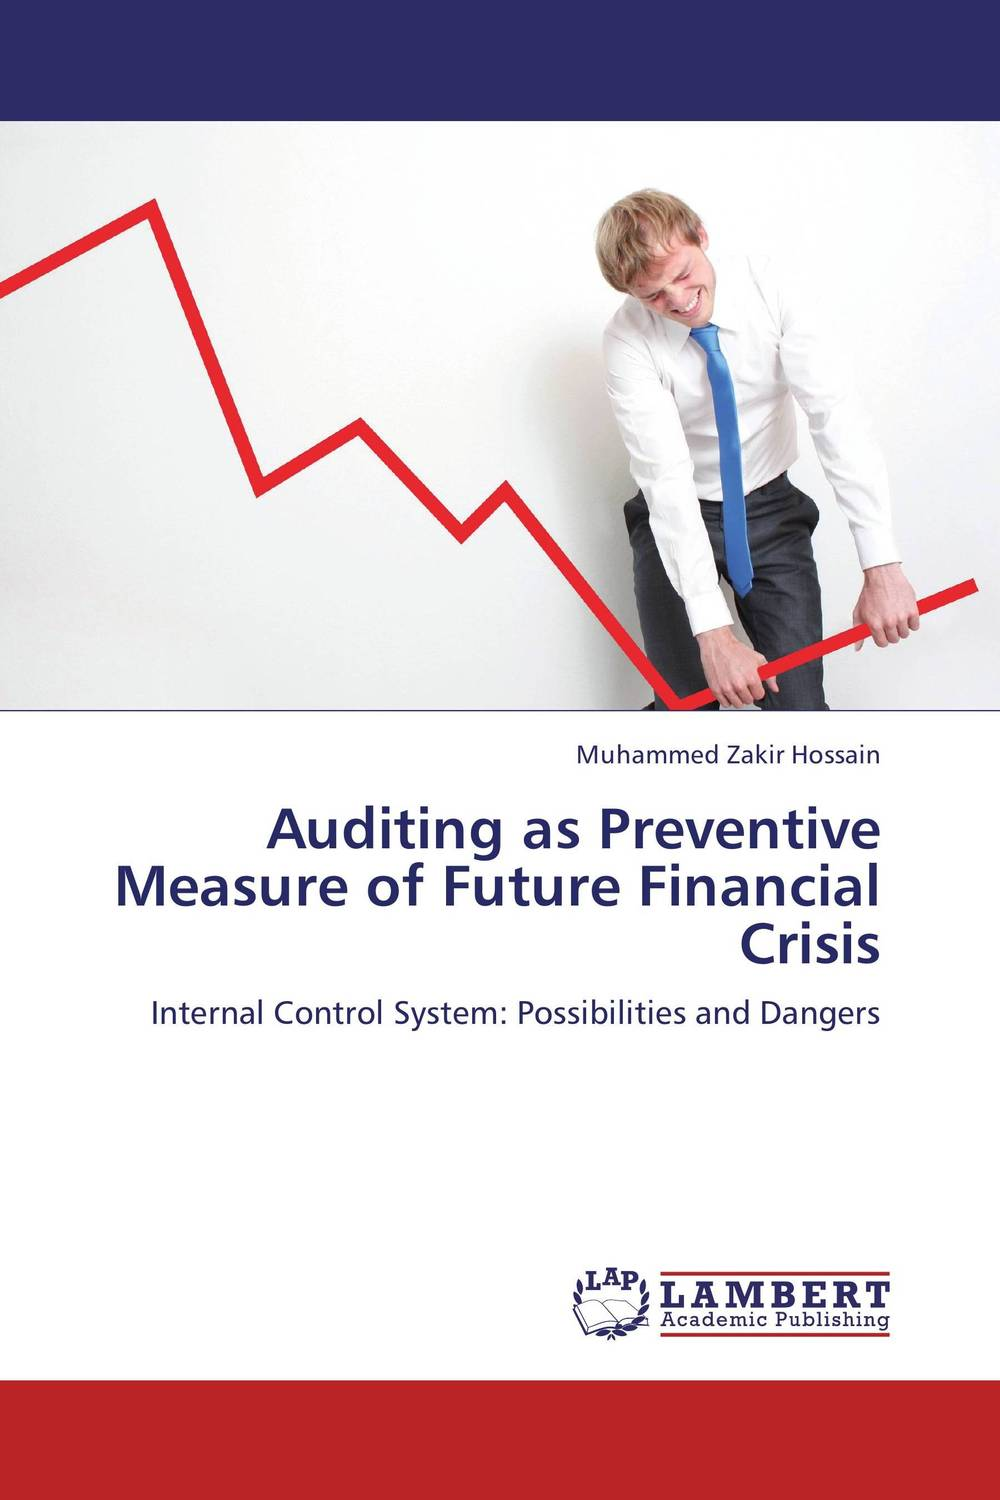 Auditing as Preventive Measure of Future Financial Crisis